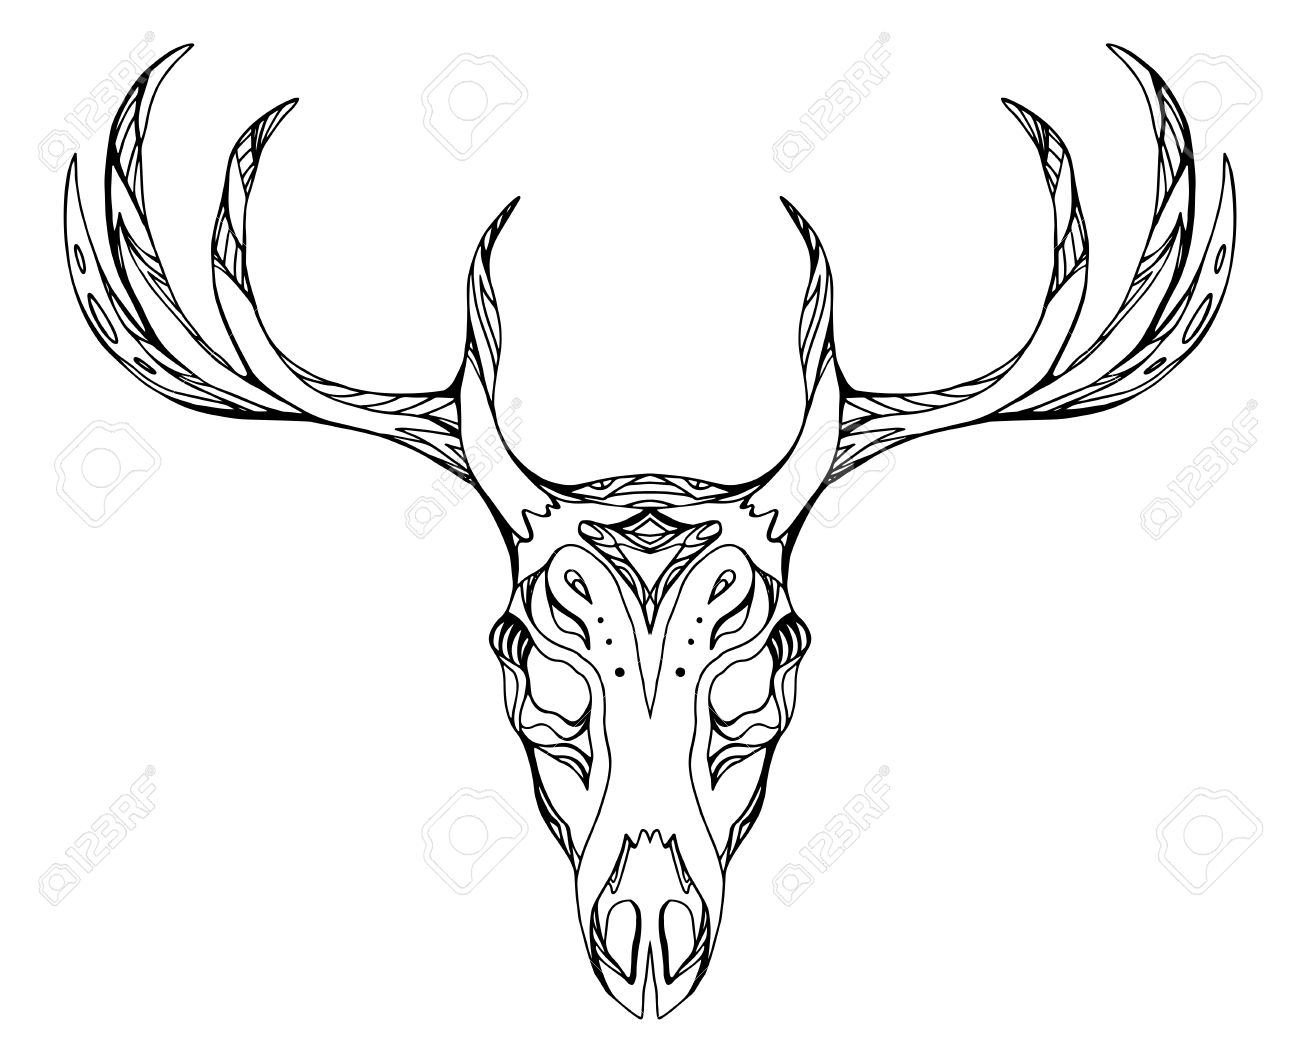 1300x1063 Contour Illustration Of A Deer Skull With Antlers With Boho